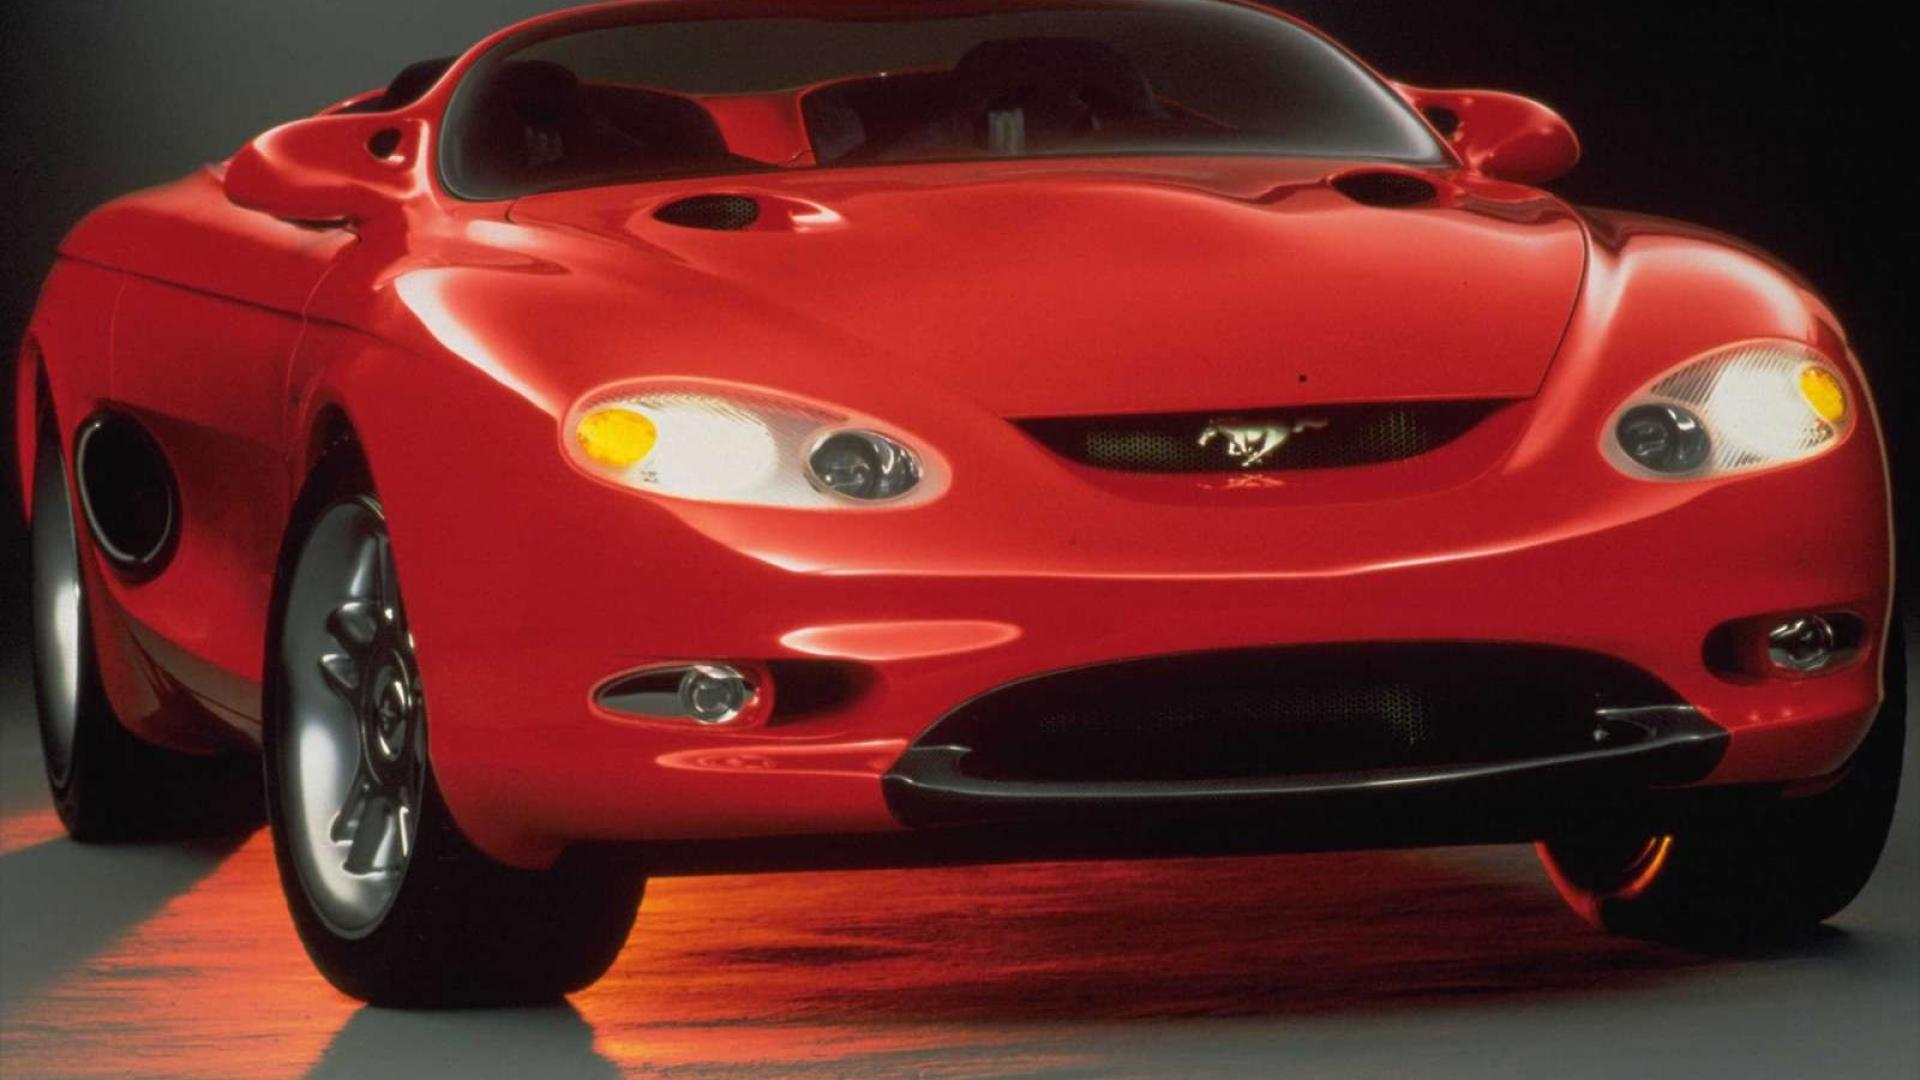 1992 Mach III Concept, фото Ford Mustang